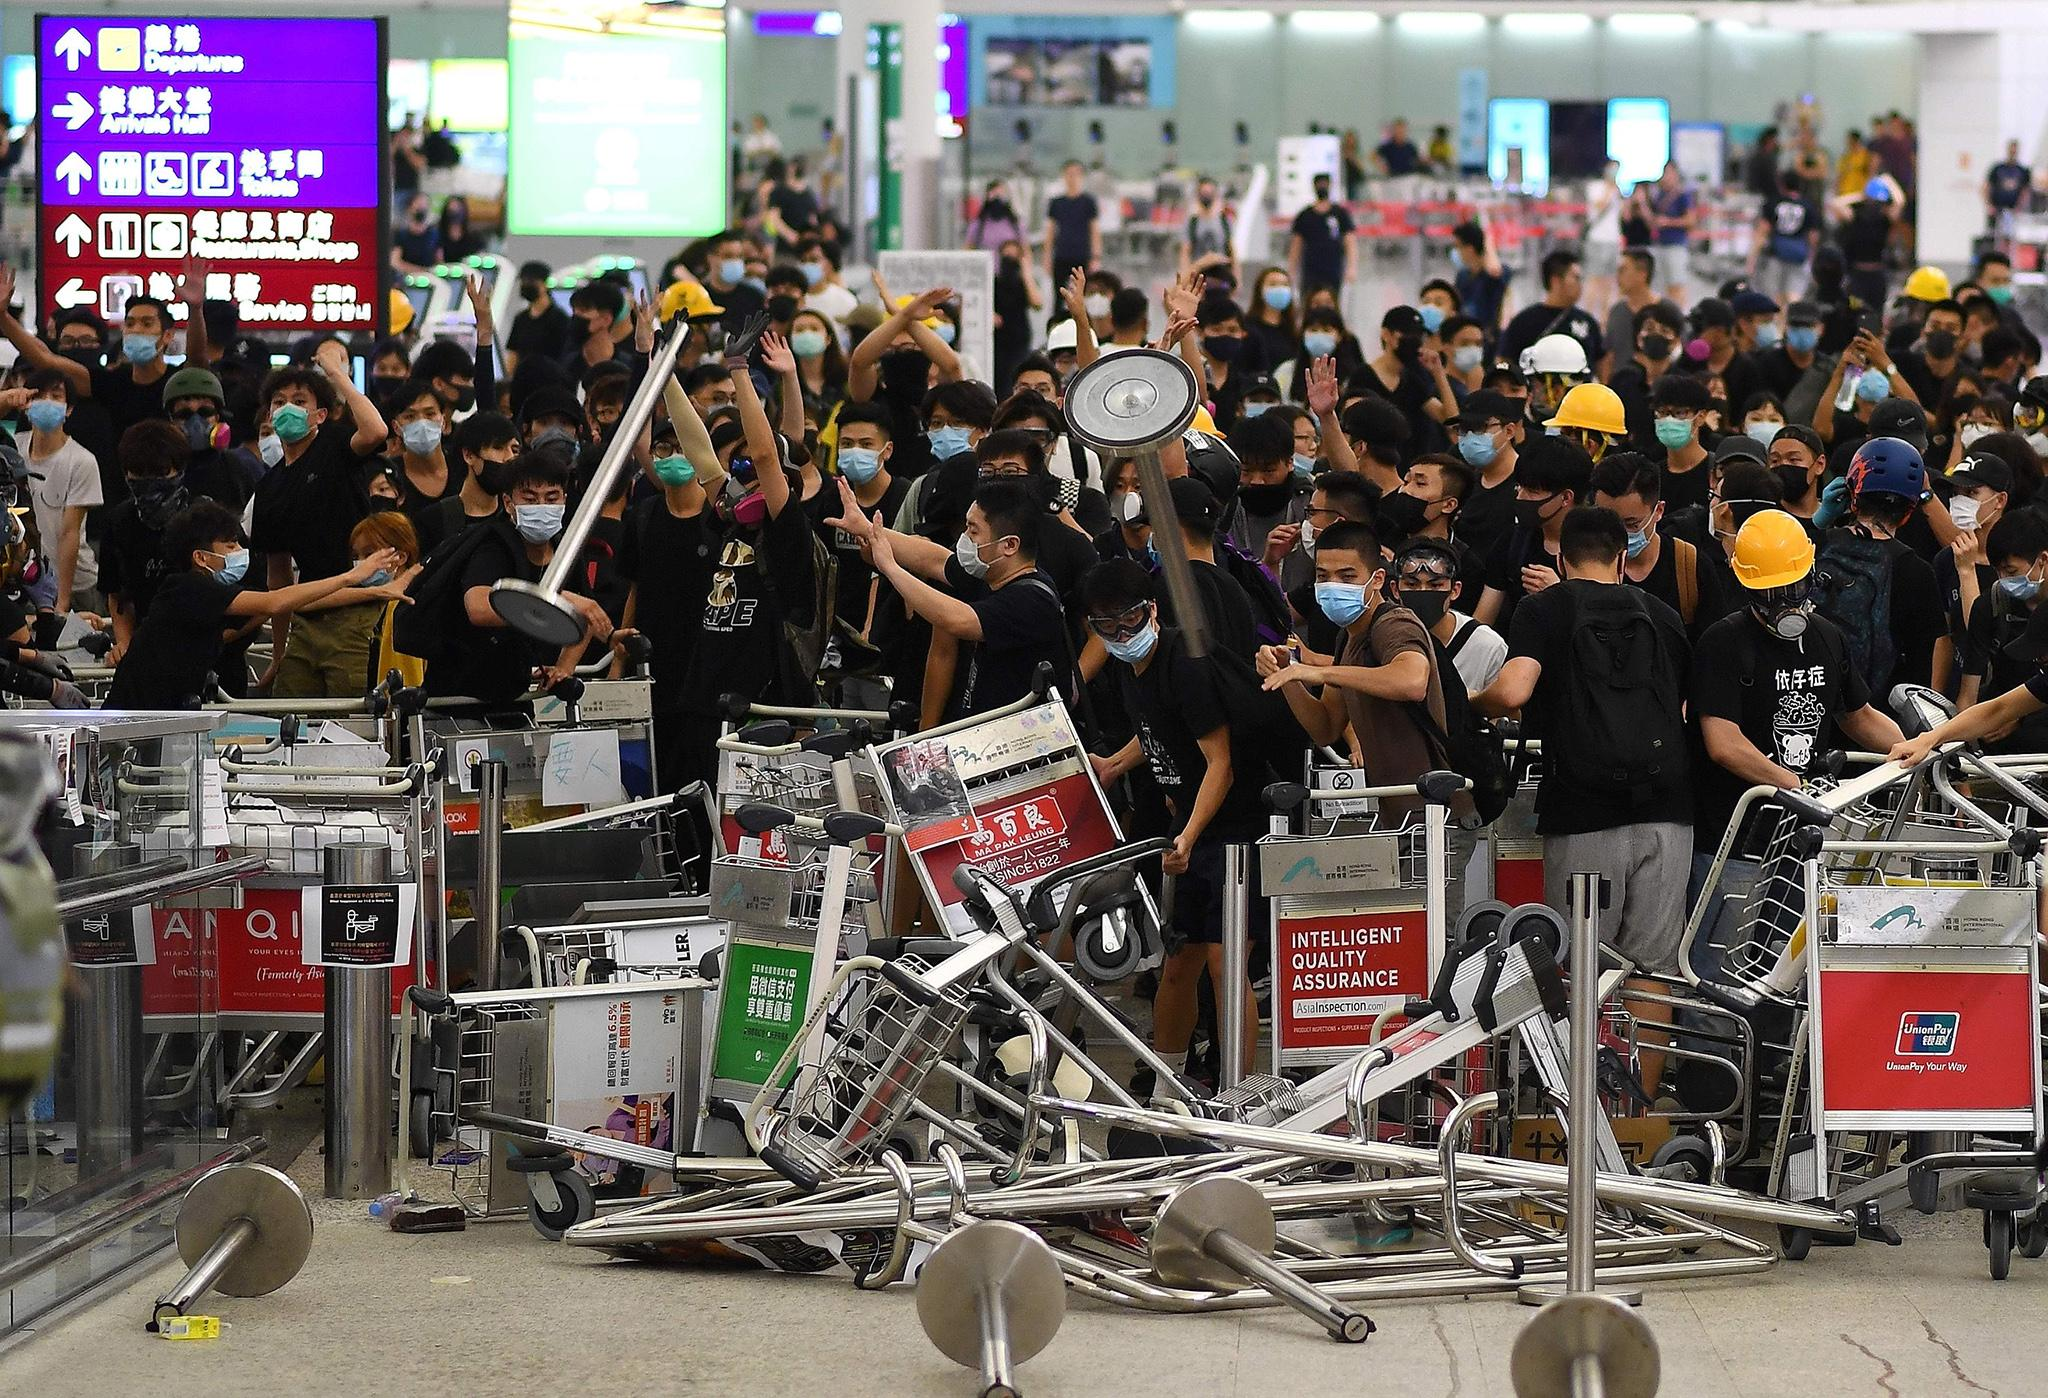 Several protests which caused massive disruptions at Hong Kong International Airport have caused hundreds of Cathay flight cancellations